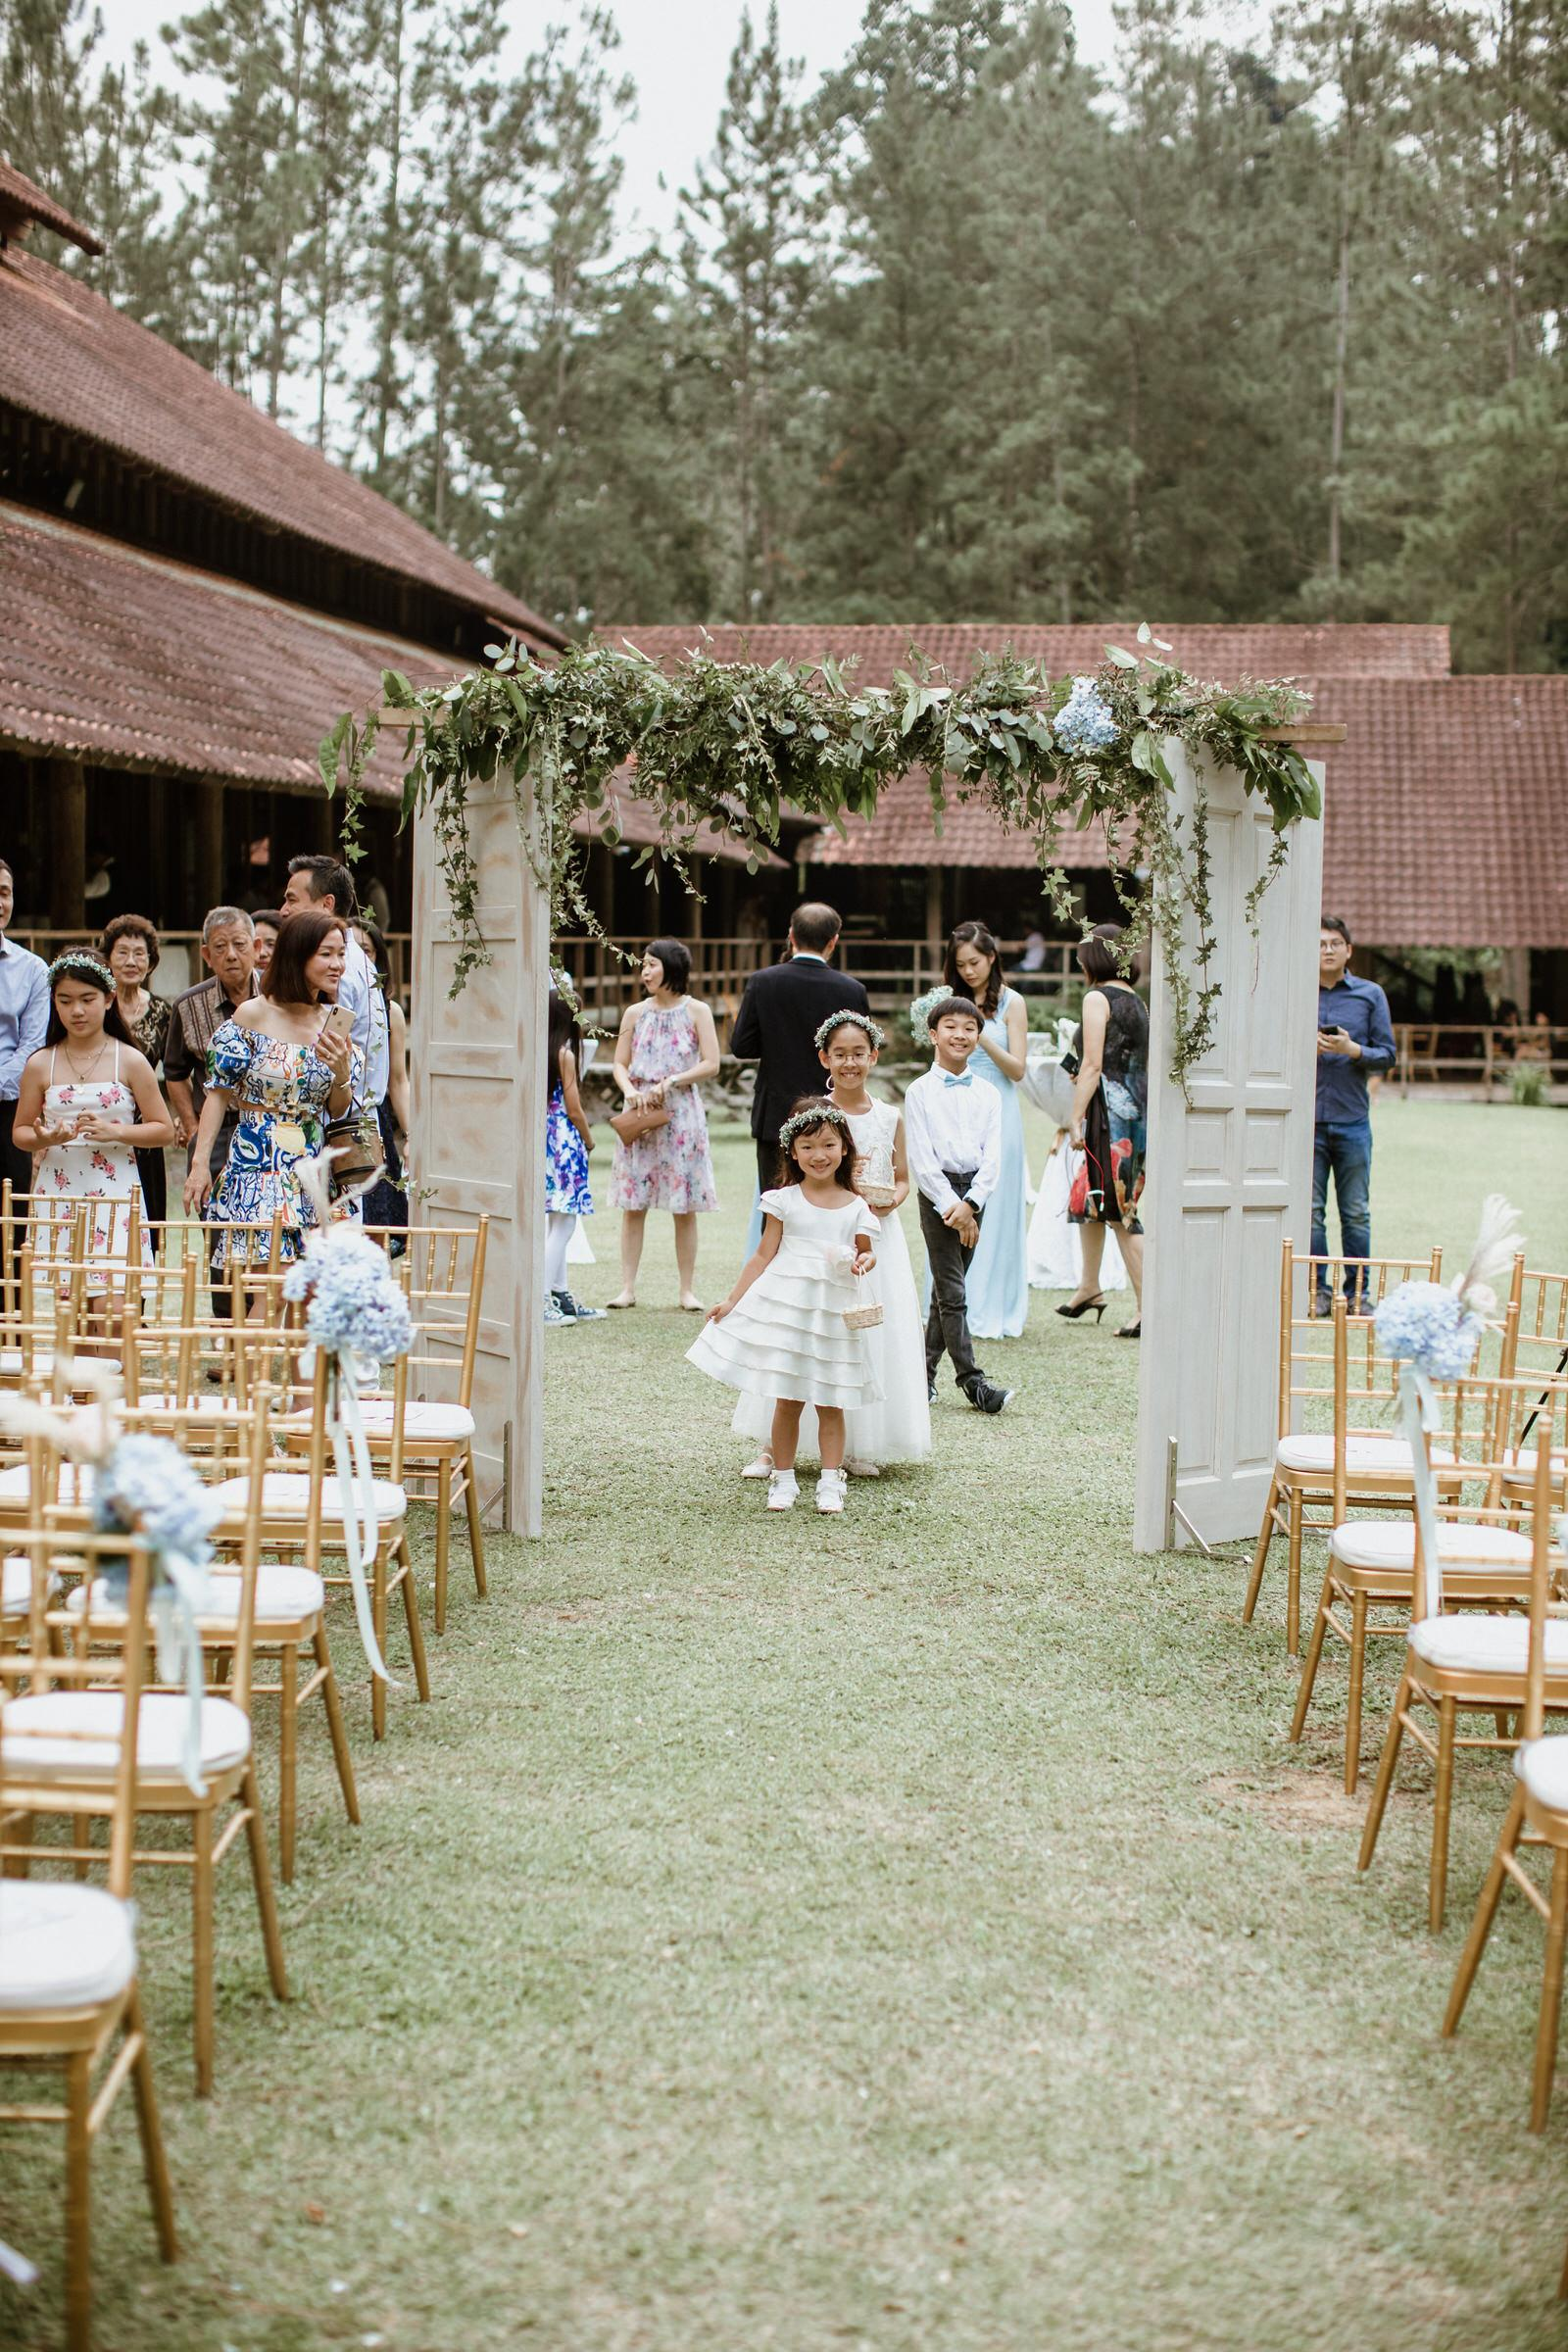 Tanarimba Rustic Garden Weding Janda baik Decoration Photobooth Cliff Choong Photography